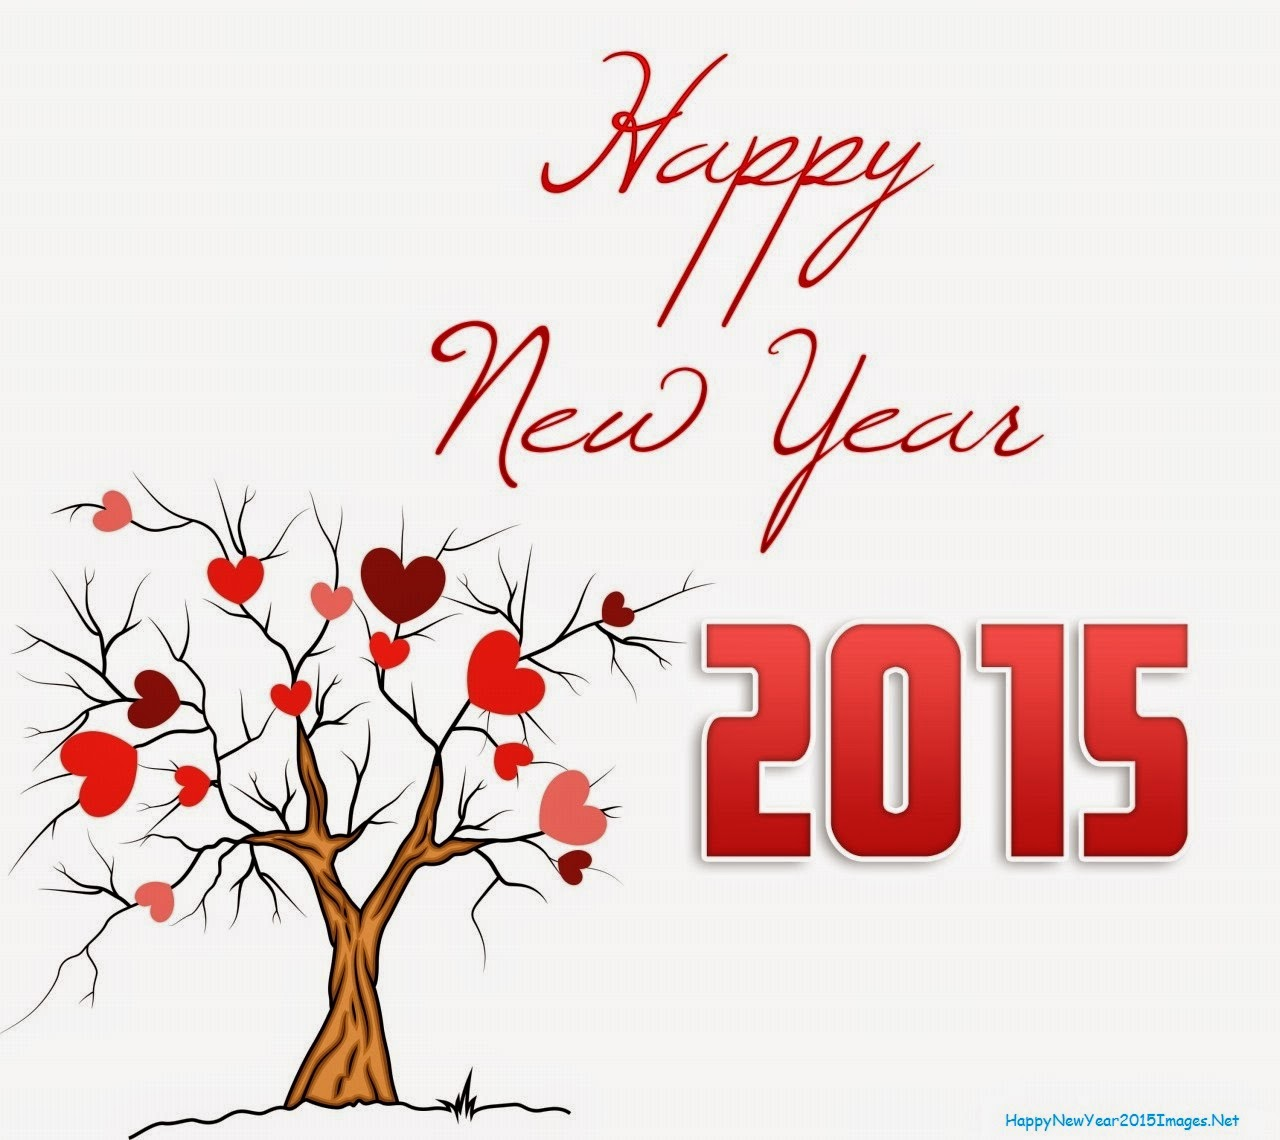 Happy New Year 2015 HD Wallpaper Collection   HD Wallpaper 1280x1140